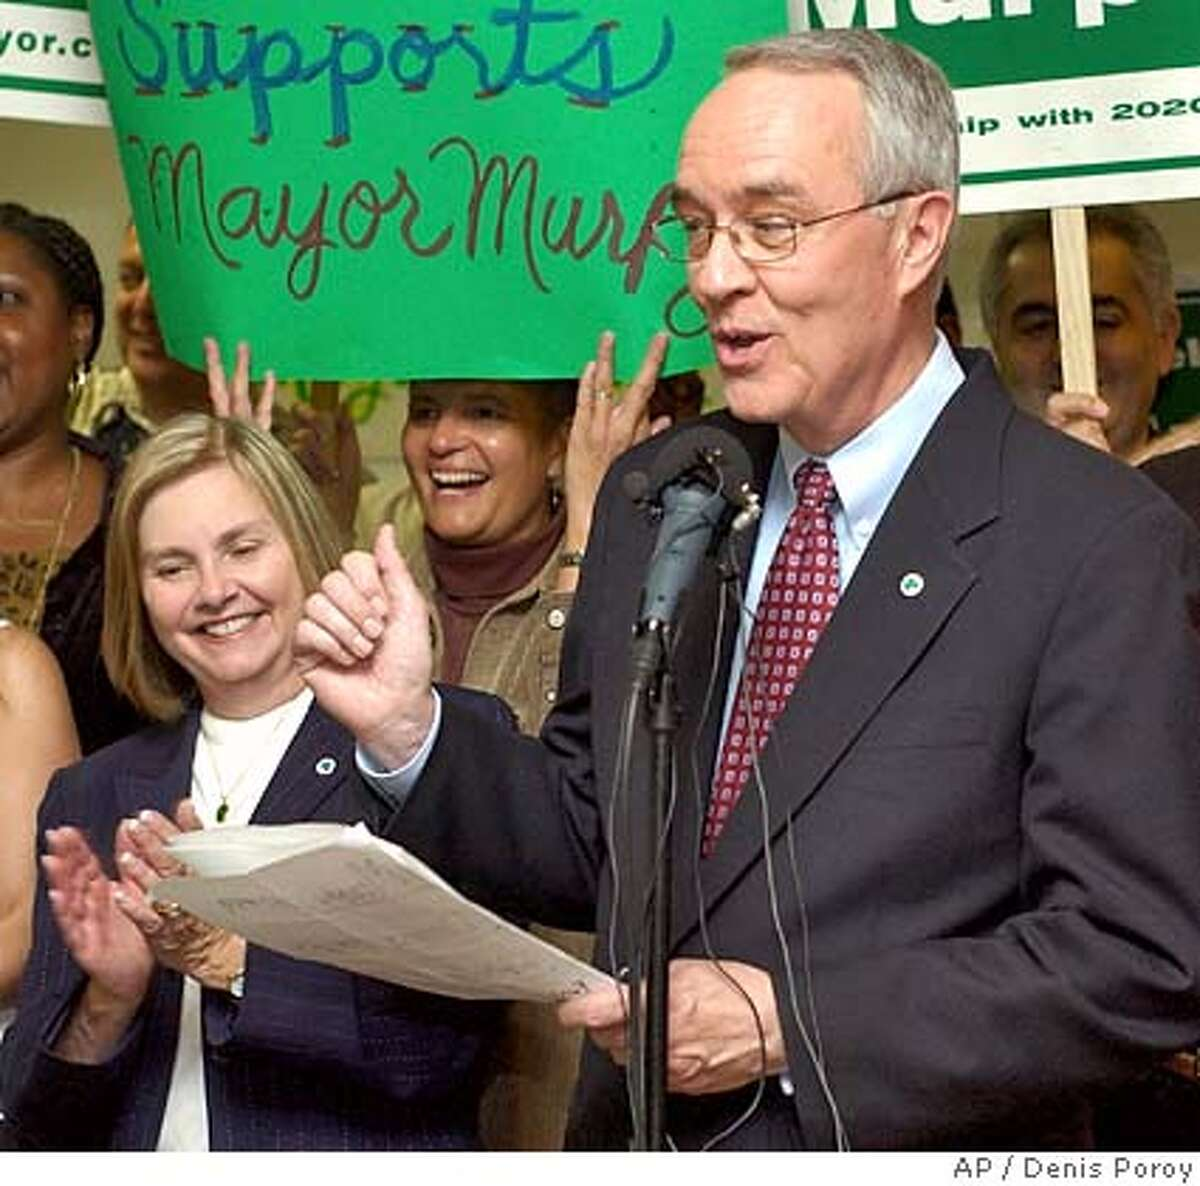 San Diego Mayor Dick Murphy, right, speaks as his wife Jan Murphy, left, looks on at a news conference Friday Nov. 19, 2004, in San Diego, announcing victory over his opponents, write-in candidate Donna Frye and Ron Roberts, in the San Diego mayors race. Murphy made his announcement after the San Diego registrar of voters finished the vote count with Murphy in the lead. His campaign still faces lawsuits challenging the election. (AP Photo/Denis Poroy) Metro#Metro#Chronicle#11/23/2004#ALL#5star#b2#0422476270